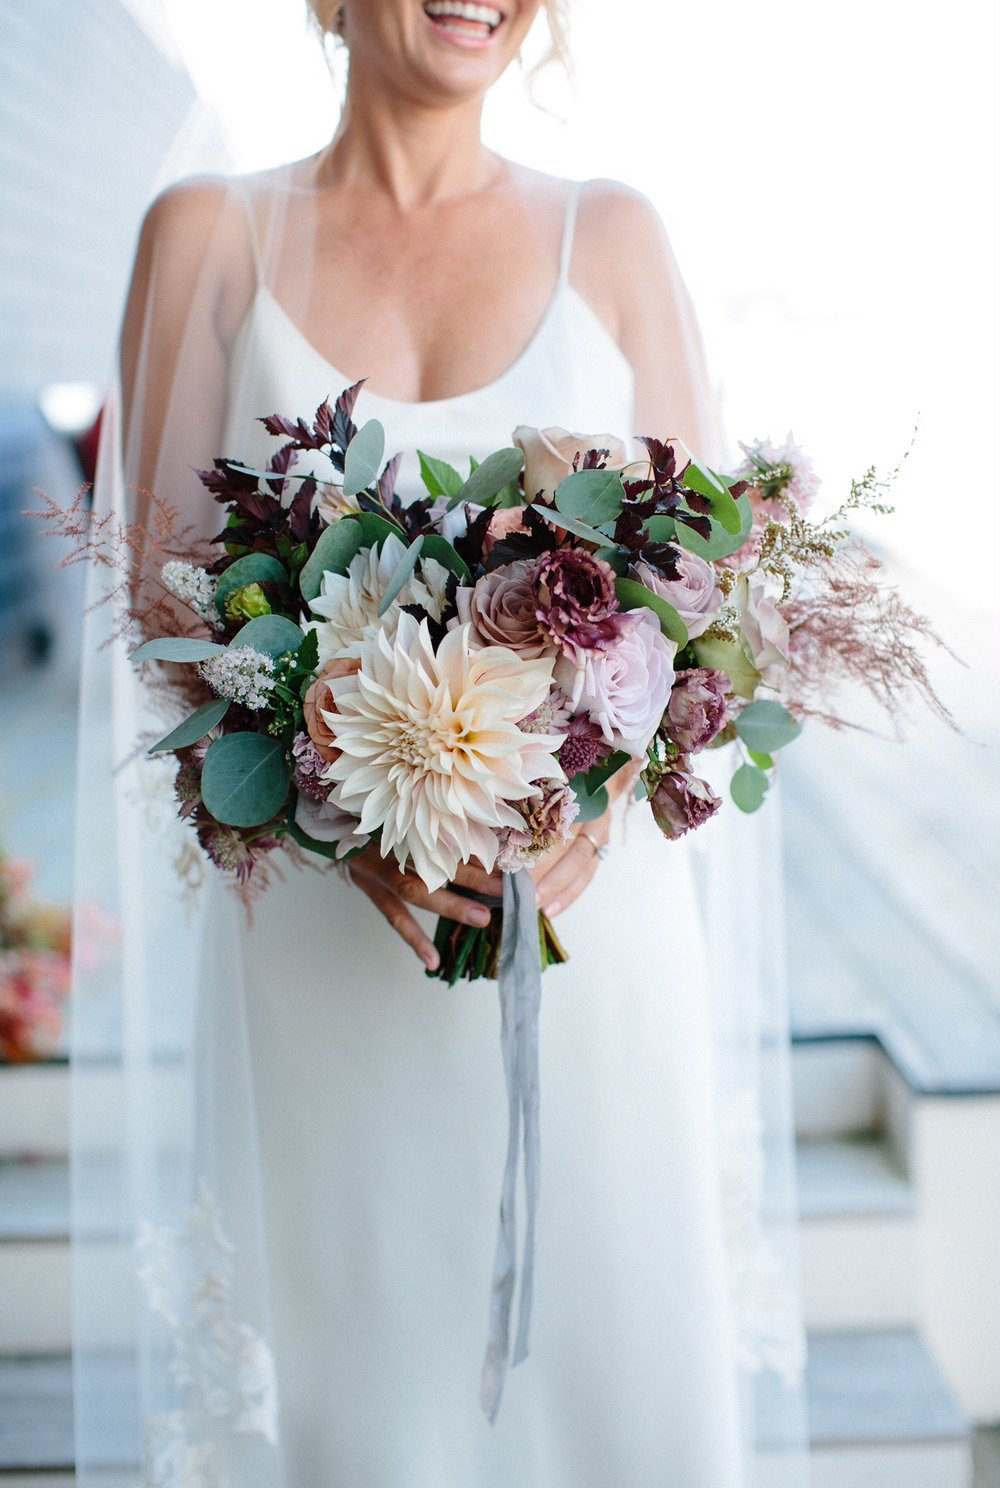 Morrice Florist weddings